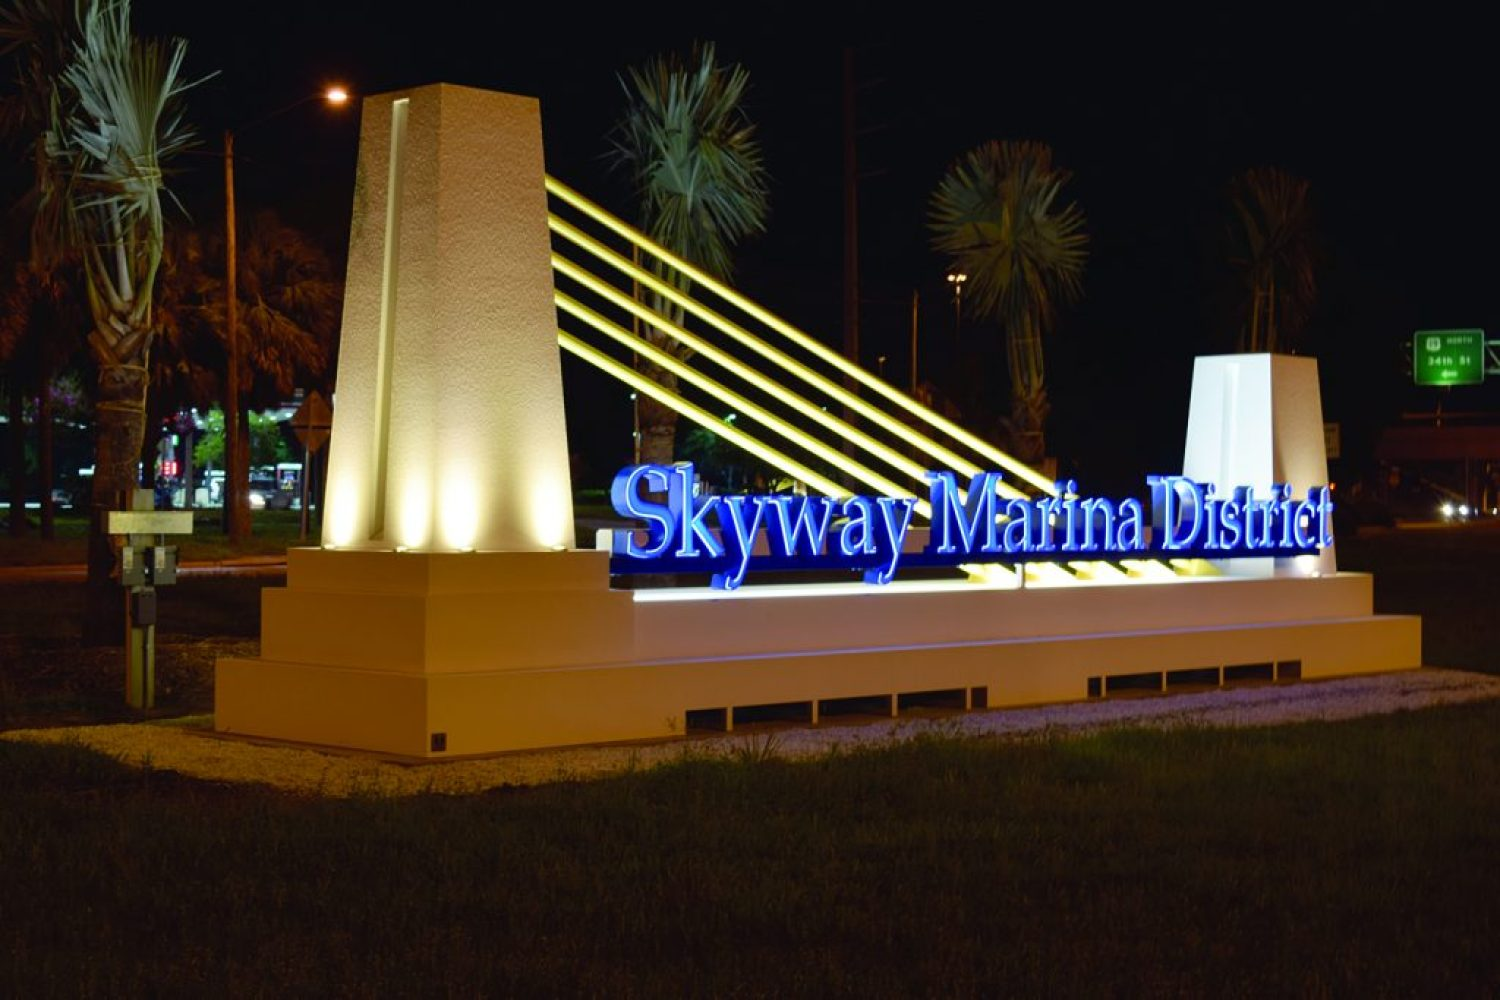 One of three new gateway signs to the Skyway Marina District can be seen on the Pinellas Bay Way (682) near the intersection with 34th Street S.